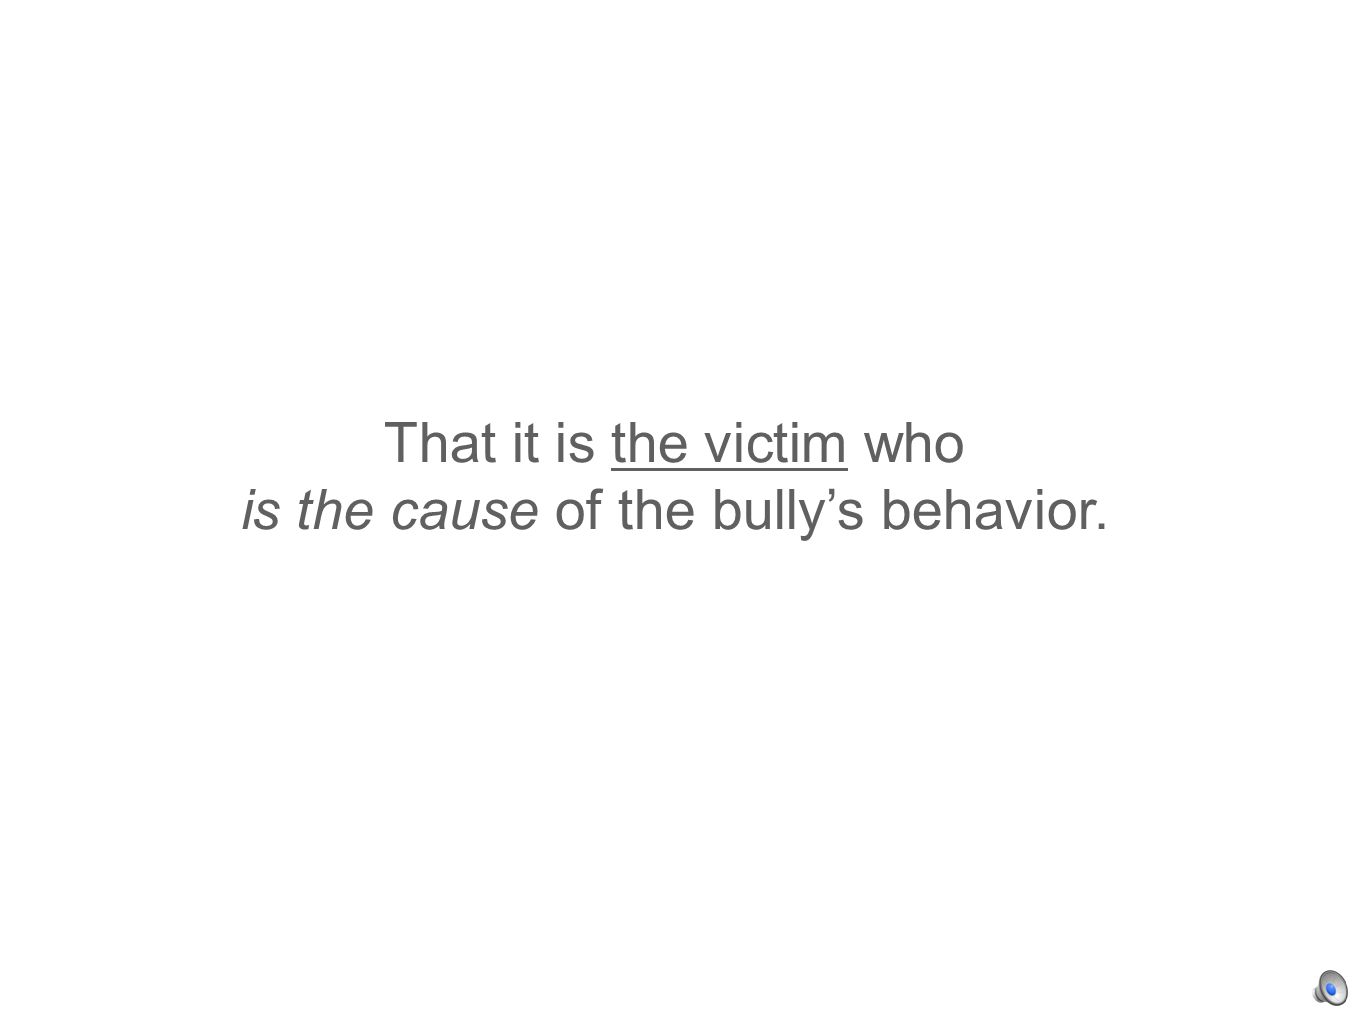 That it is the victim who is the cause of the bullys behavior.